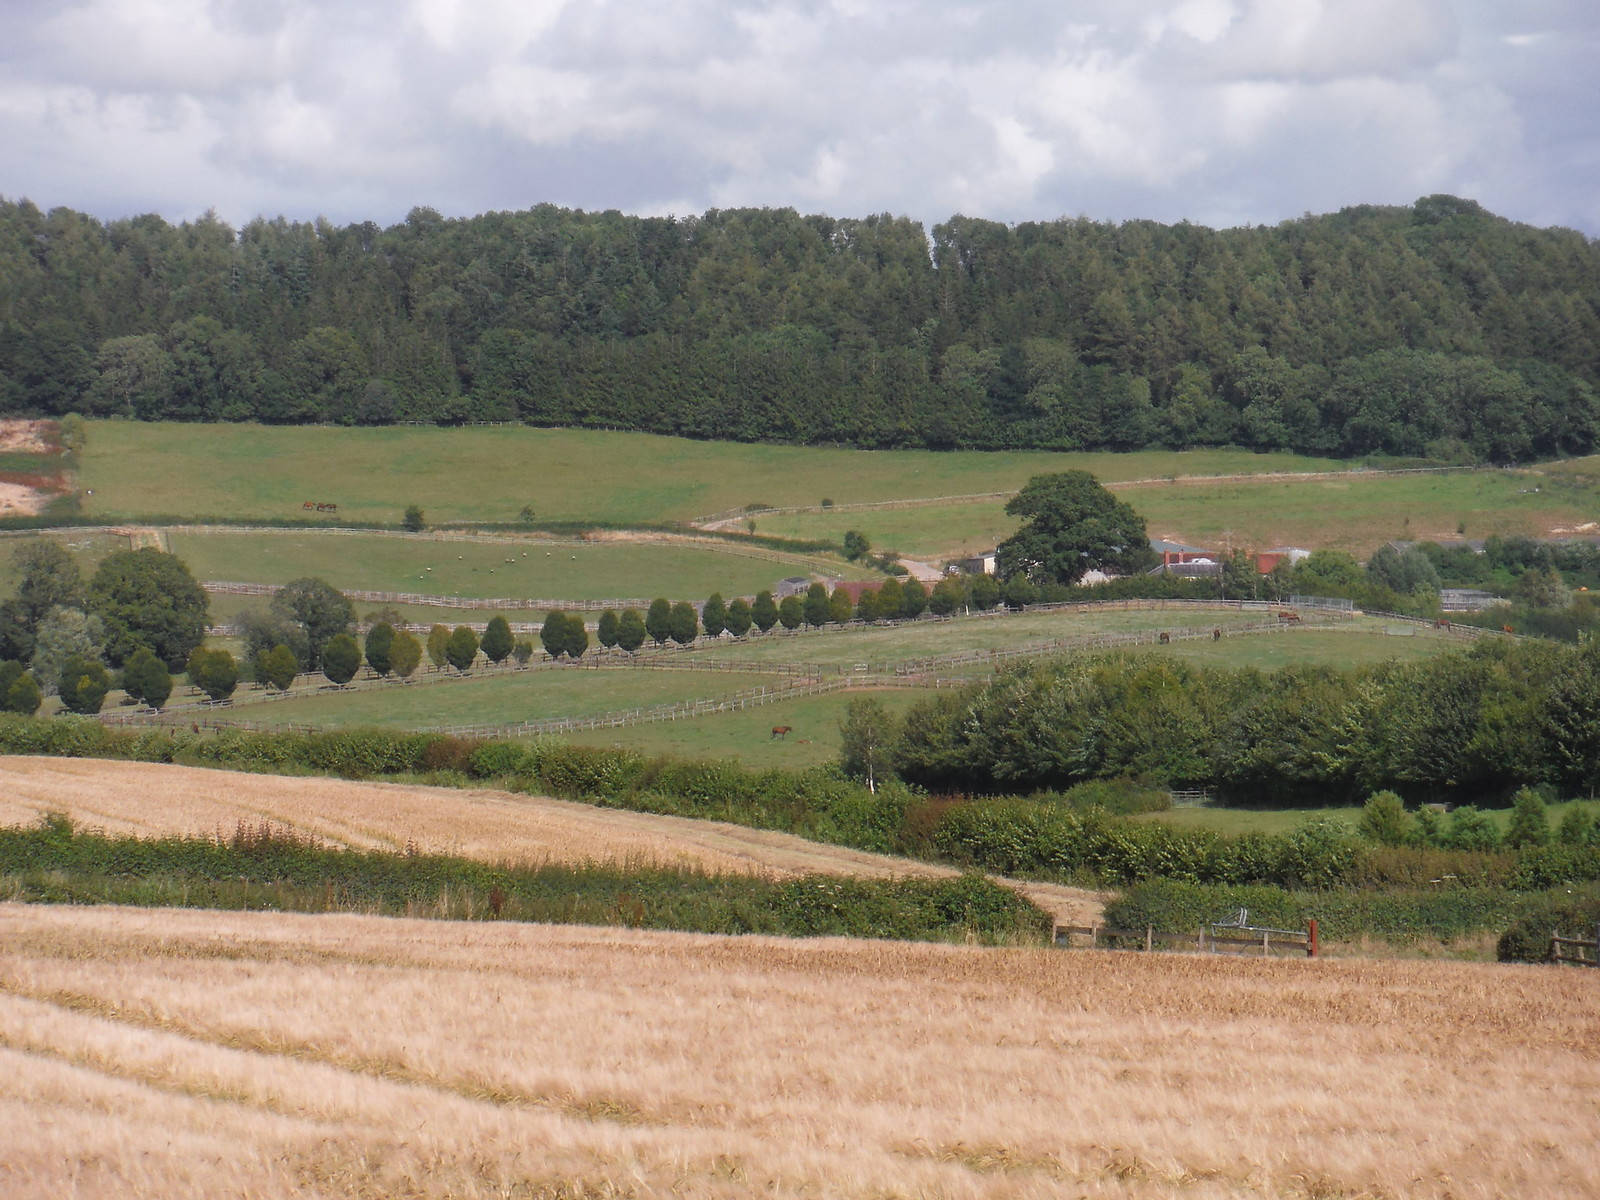 Withyslade Farm and Castle Ditches Iron Age Hill Fort Site SWC Walk 252 Tisbury Circular via Donhead St. Andrew